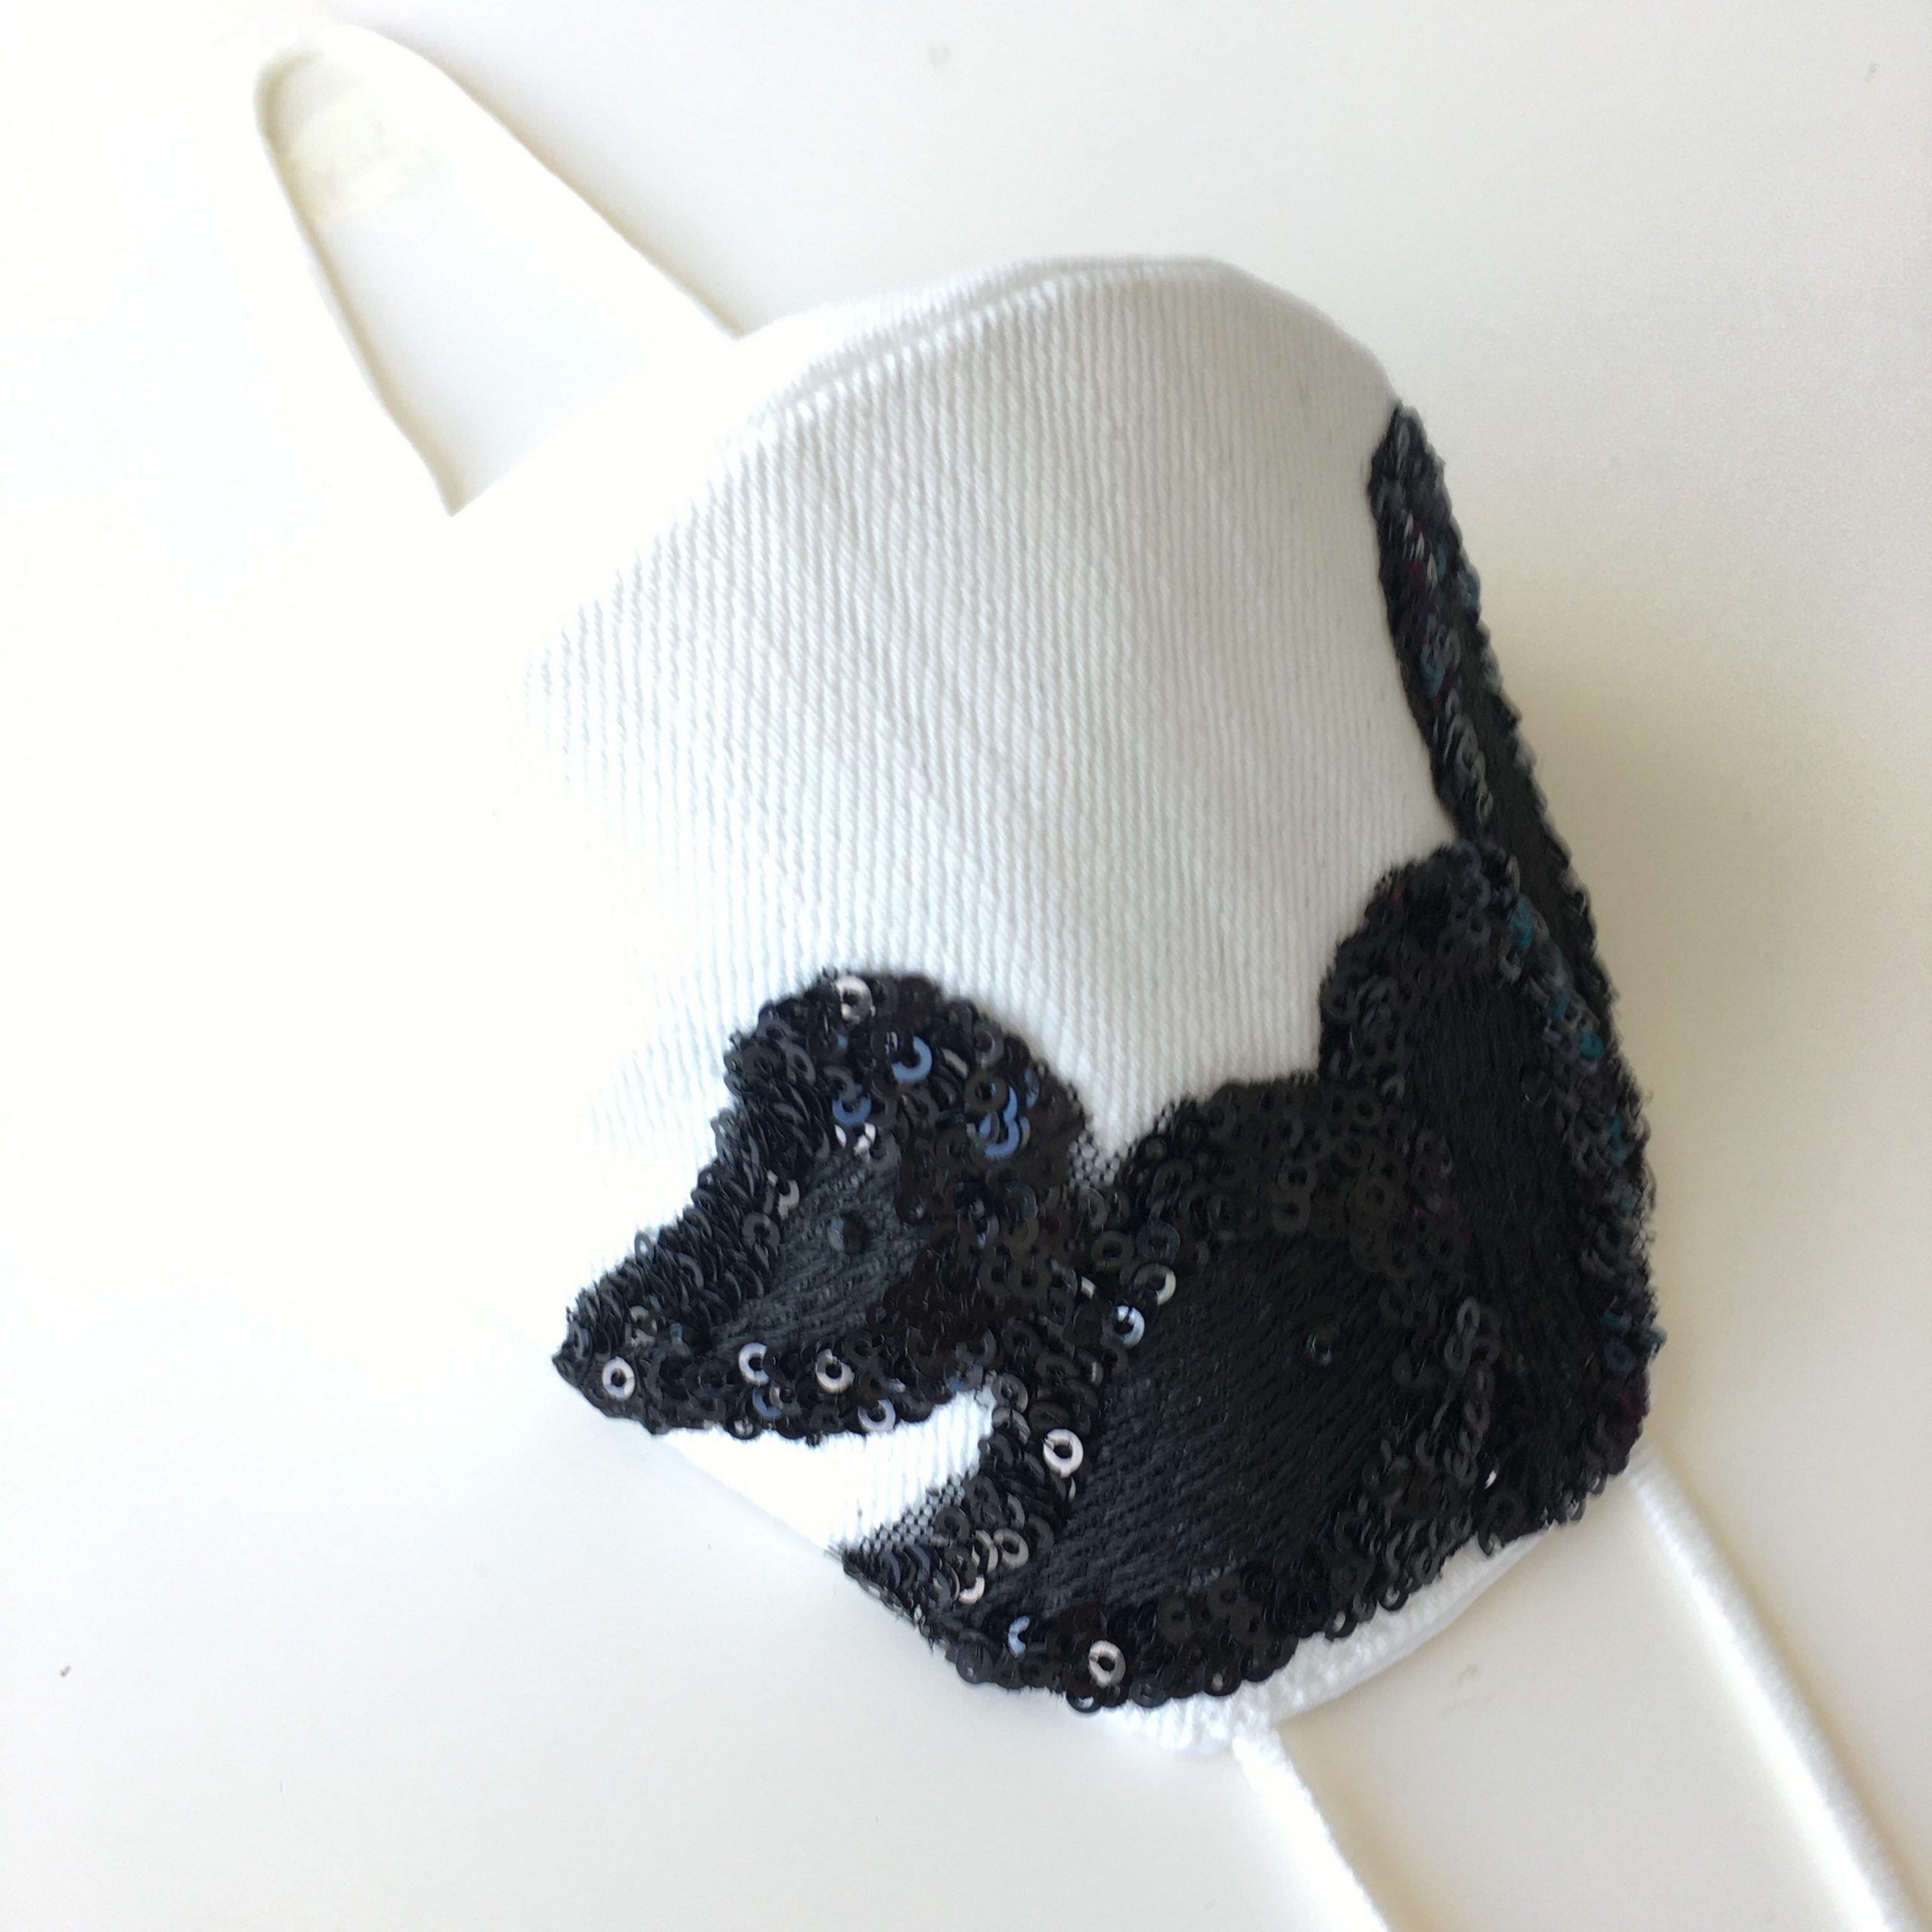 Protective Face Mask White with Black Embroidery